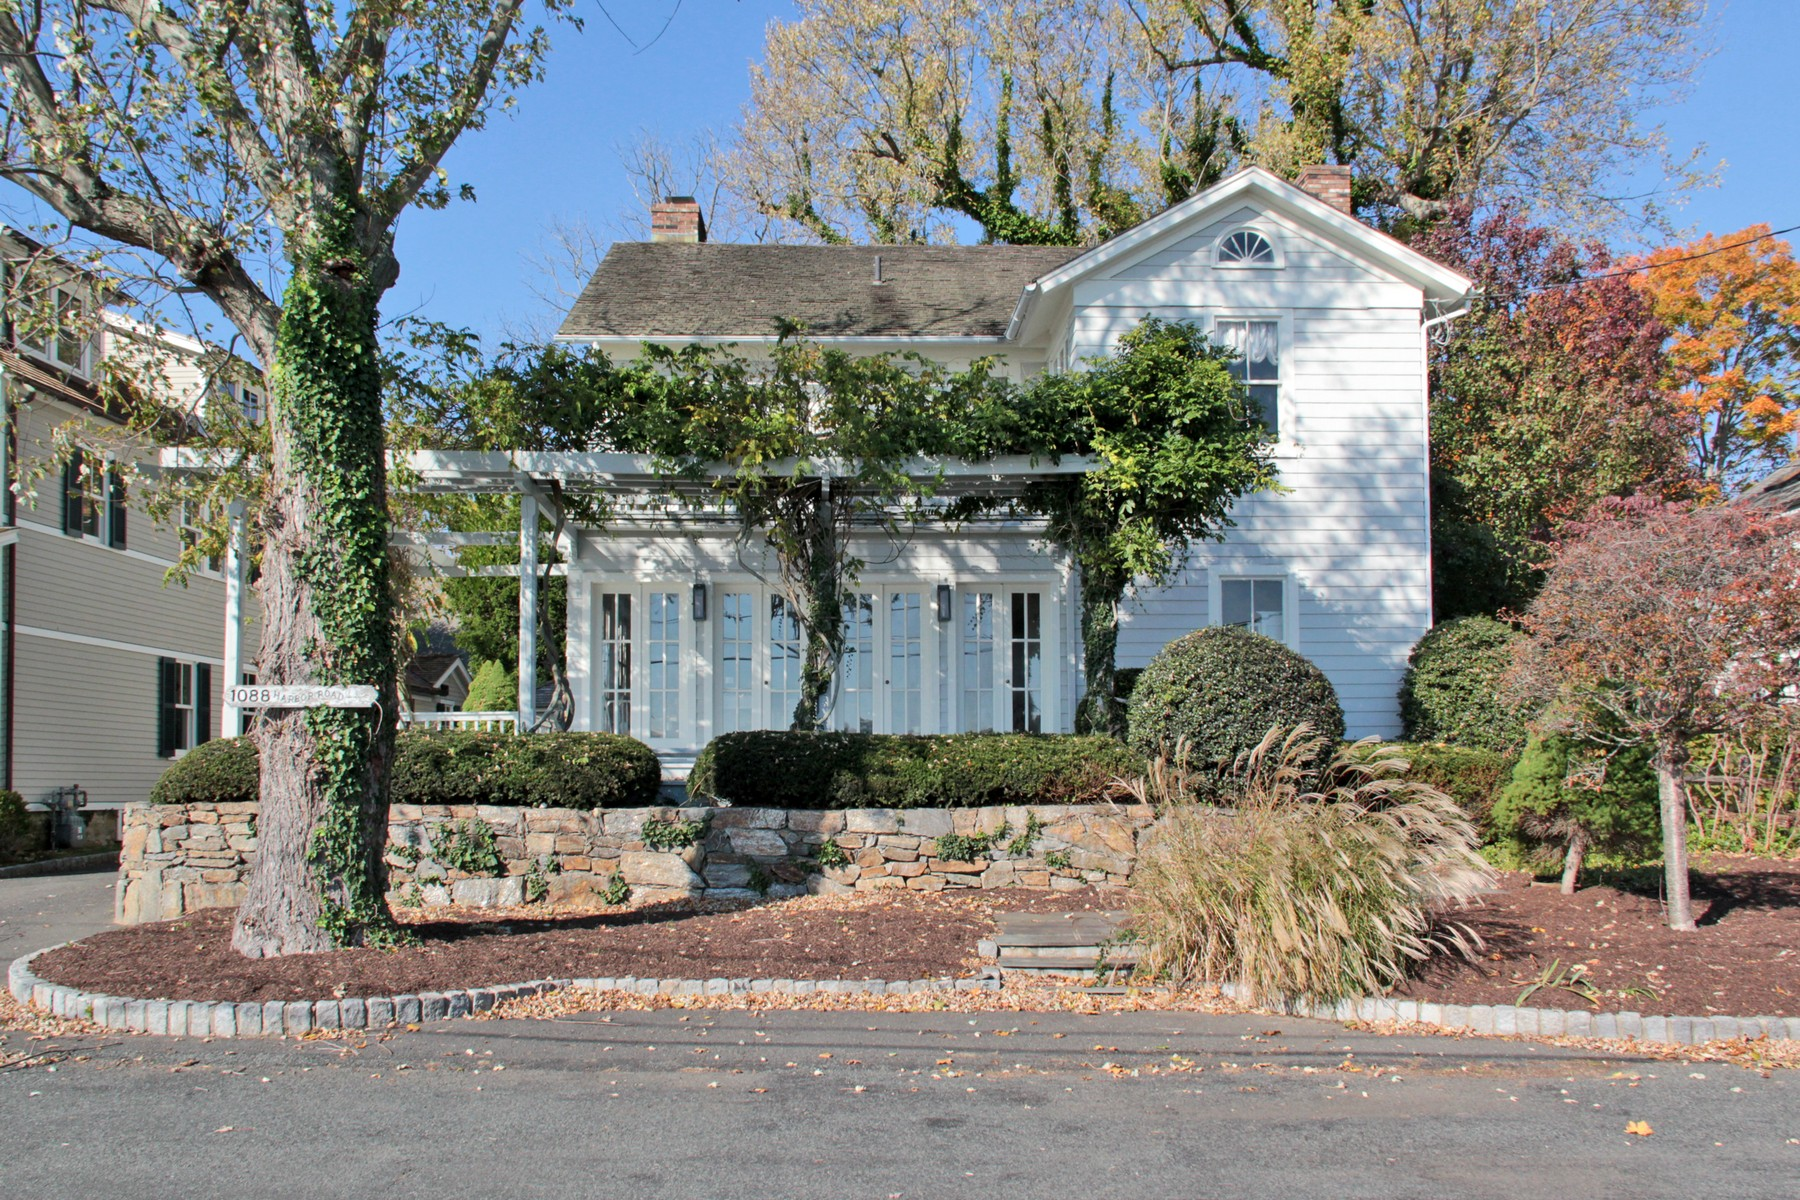 Single Family Home for Sale at Magnificent Long Island Sound Views - 1800 Historic Southport Harbor Home 1088 Harbor Road Southport, Connecticut 06890 United States